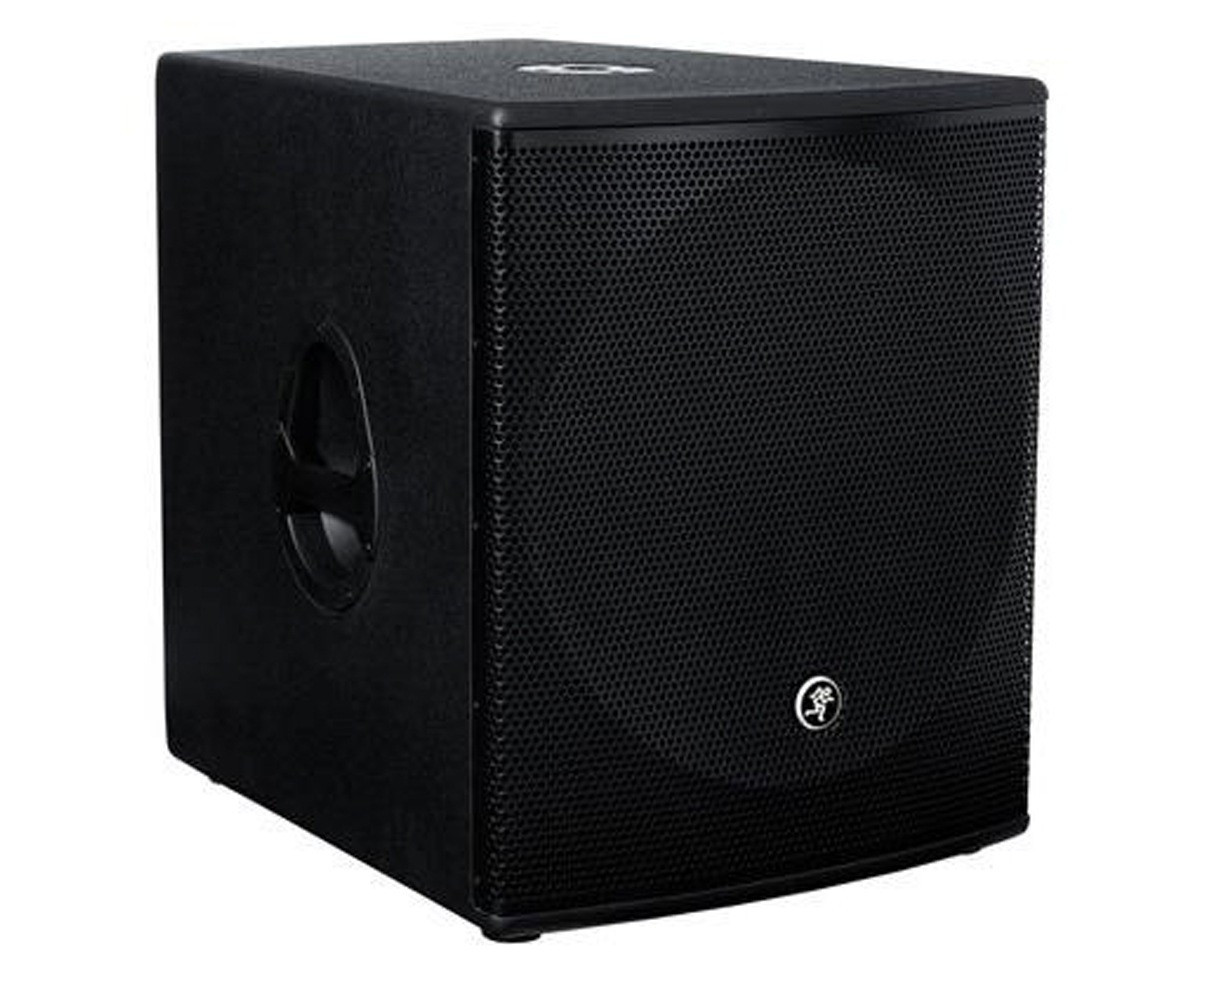 mackie srm1801 1000 watt powered subwoofer www. Black Bedroom Furniture Sets. Home Design Ideas